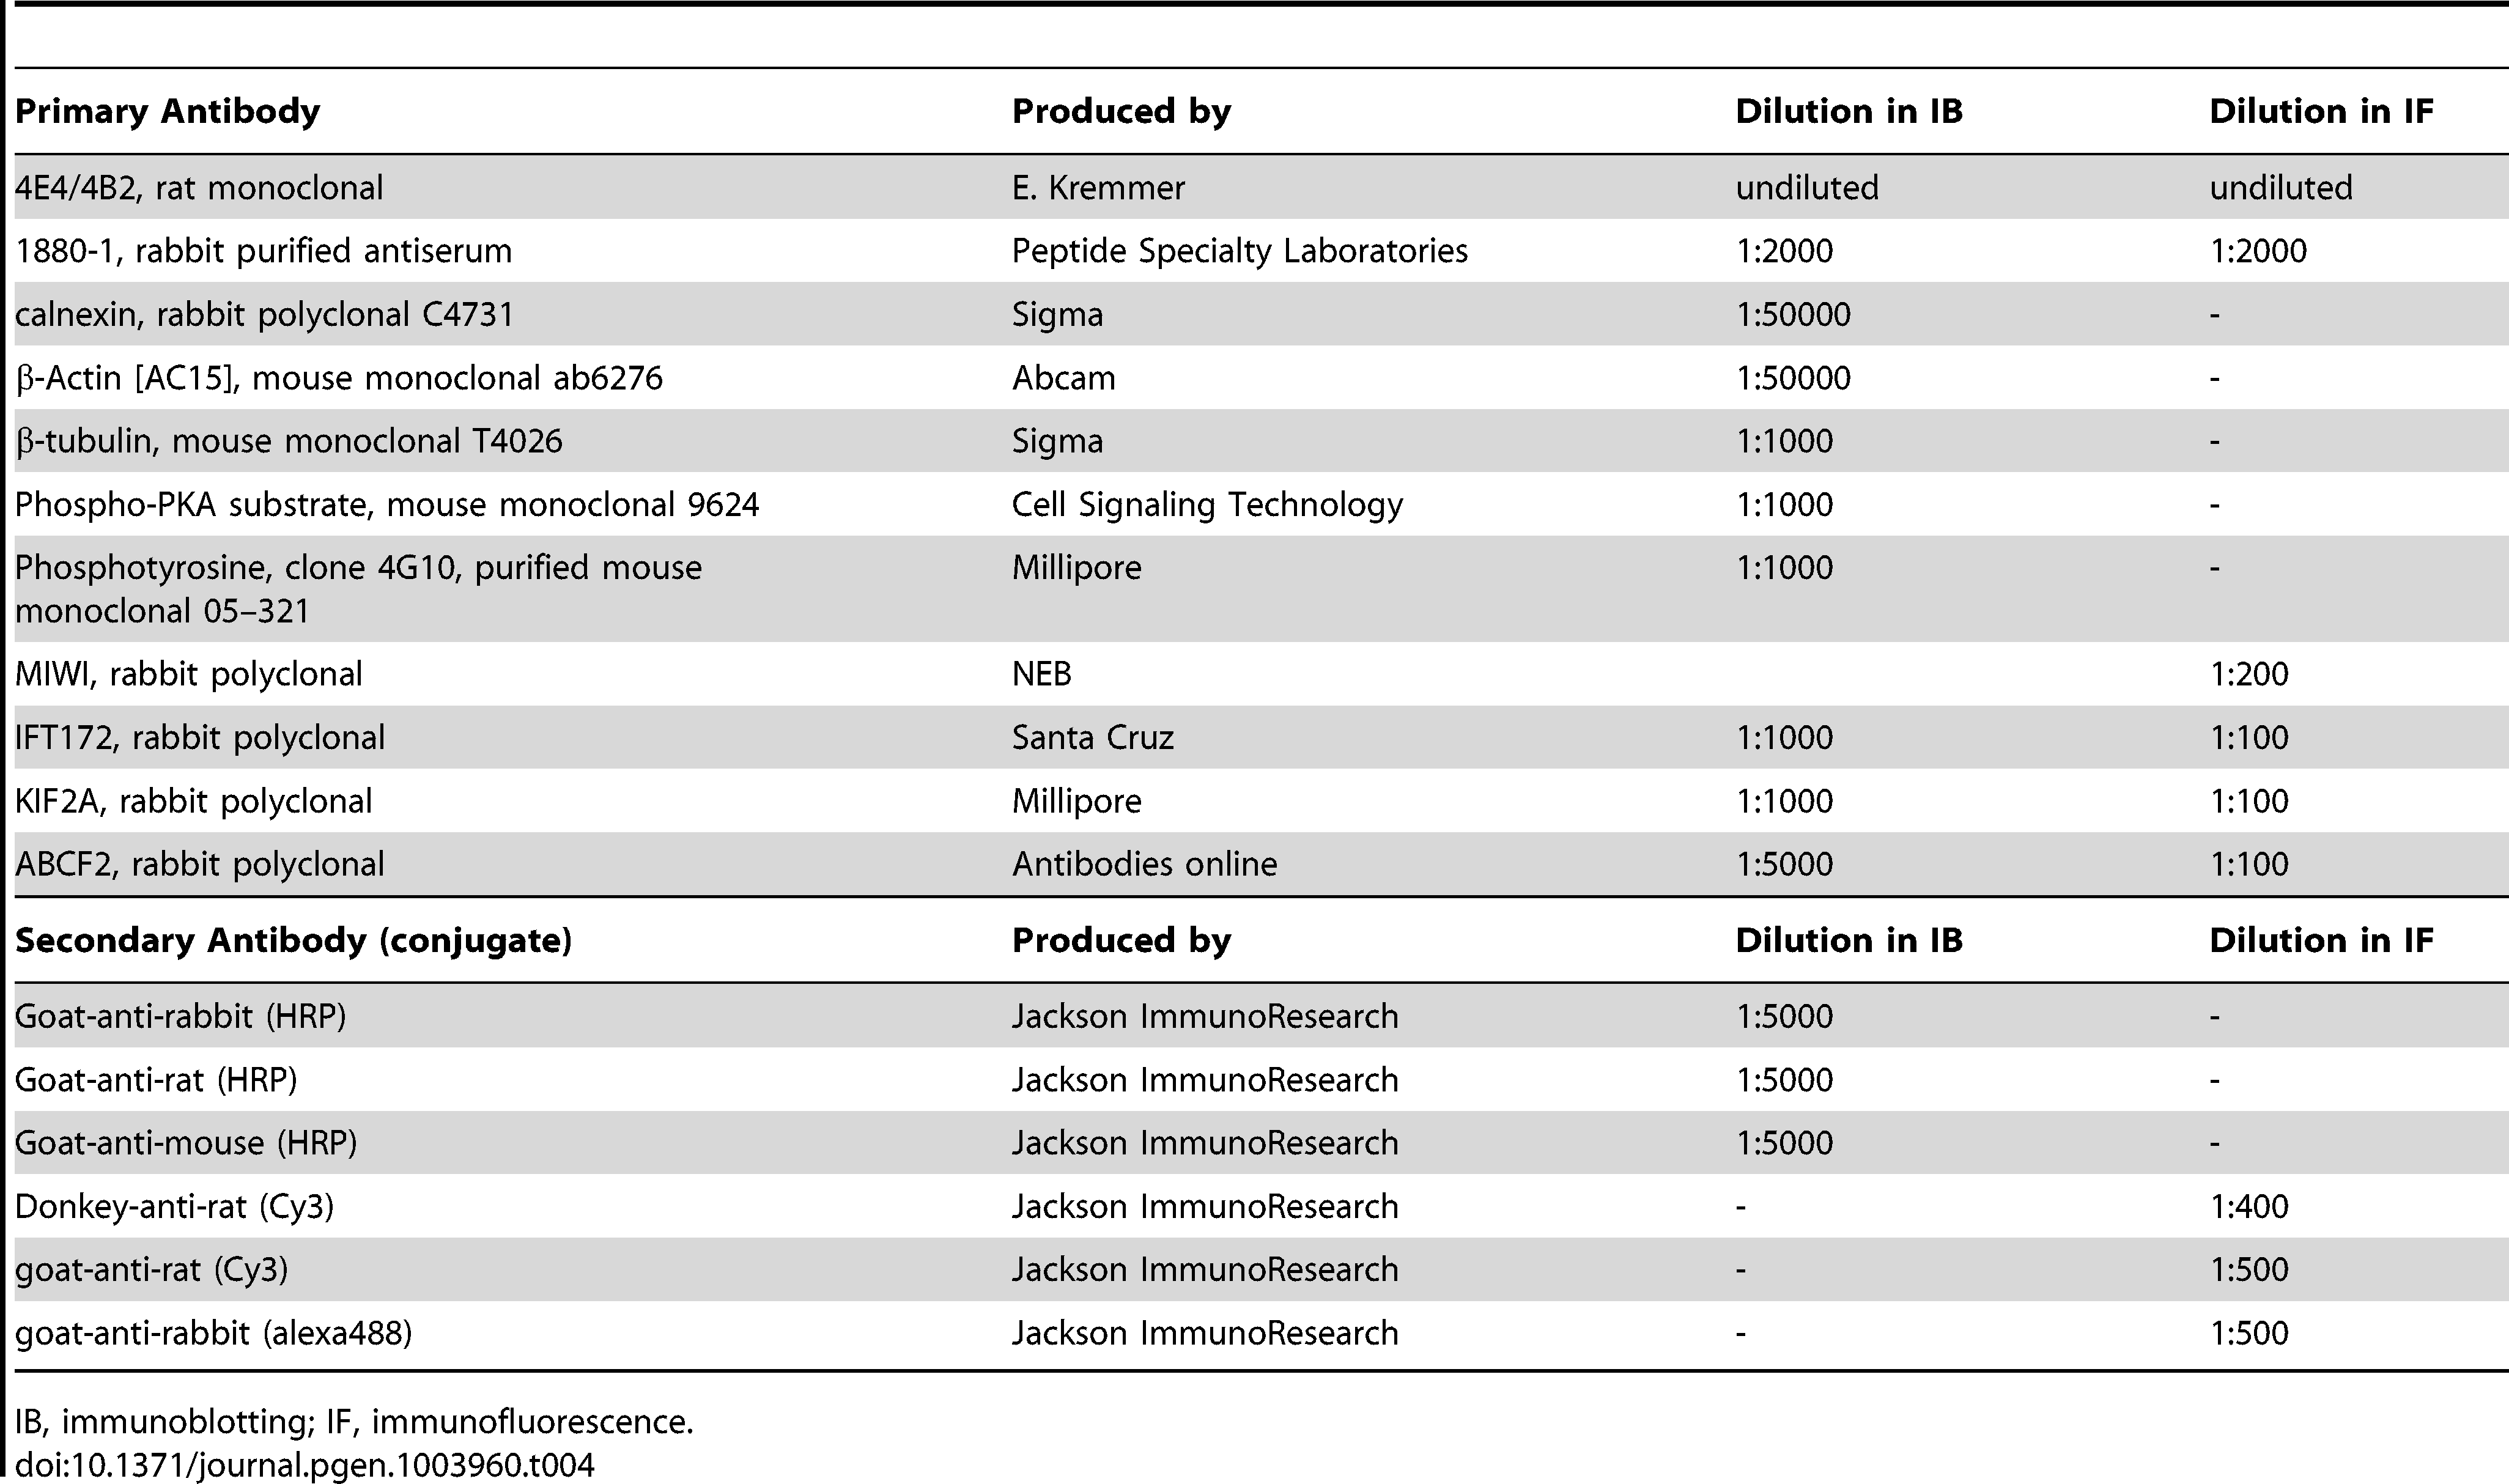 Antibodies and their dilutions.